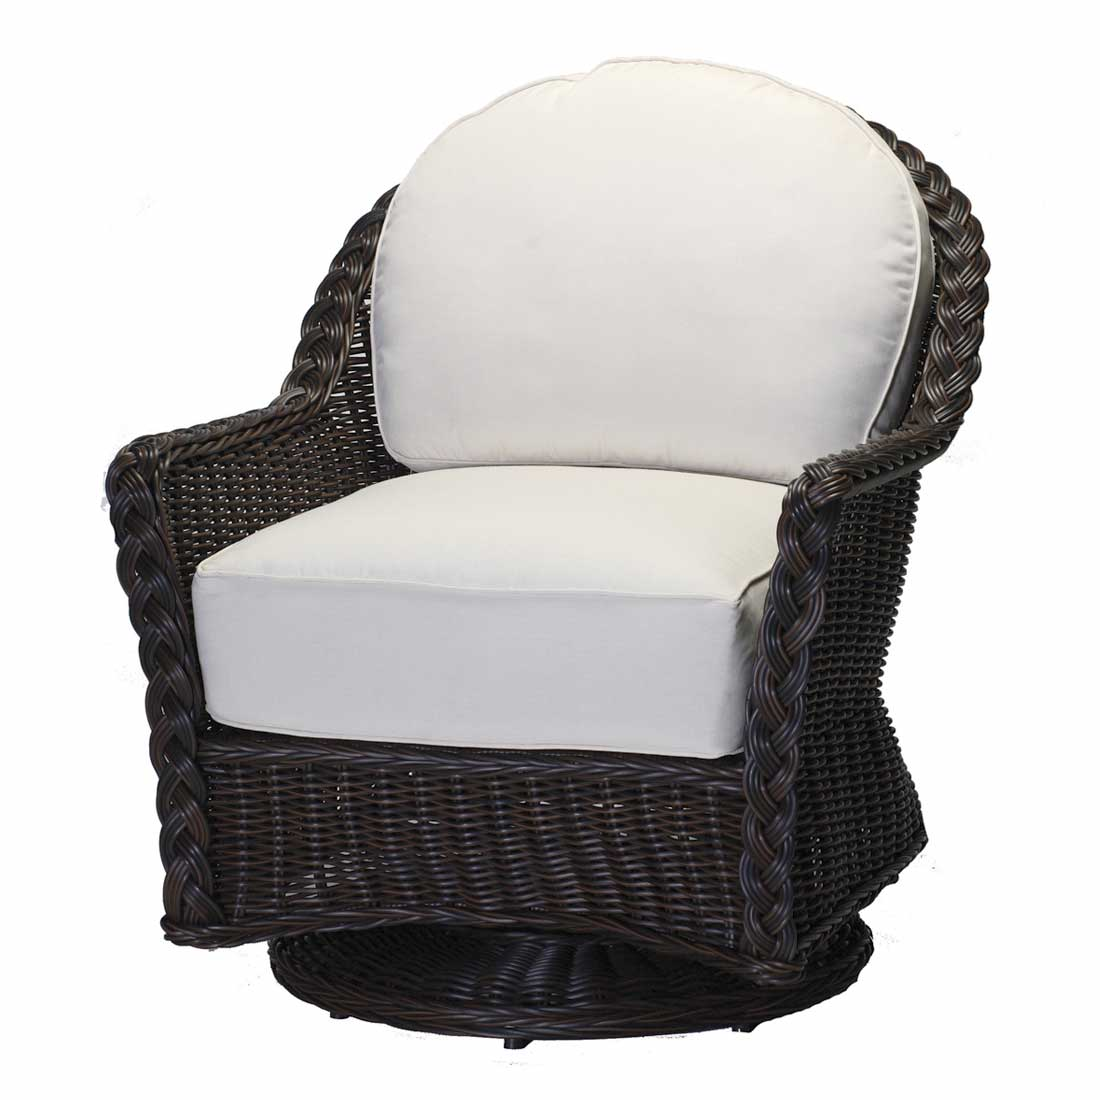 sedona large outdoor swivel glider